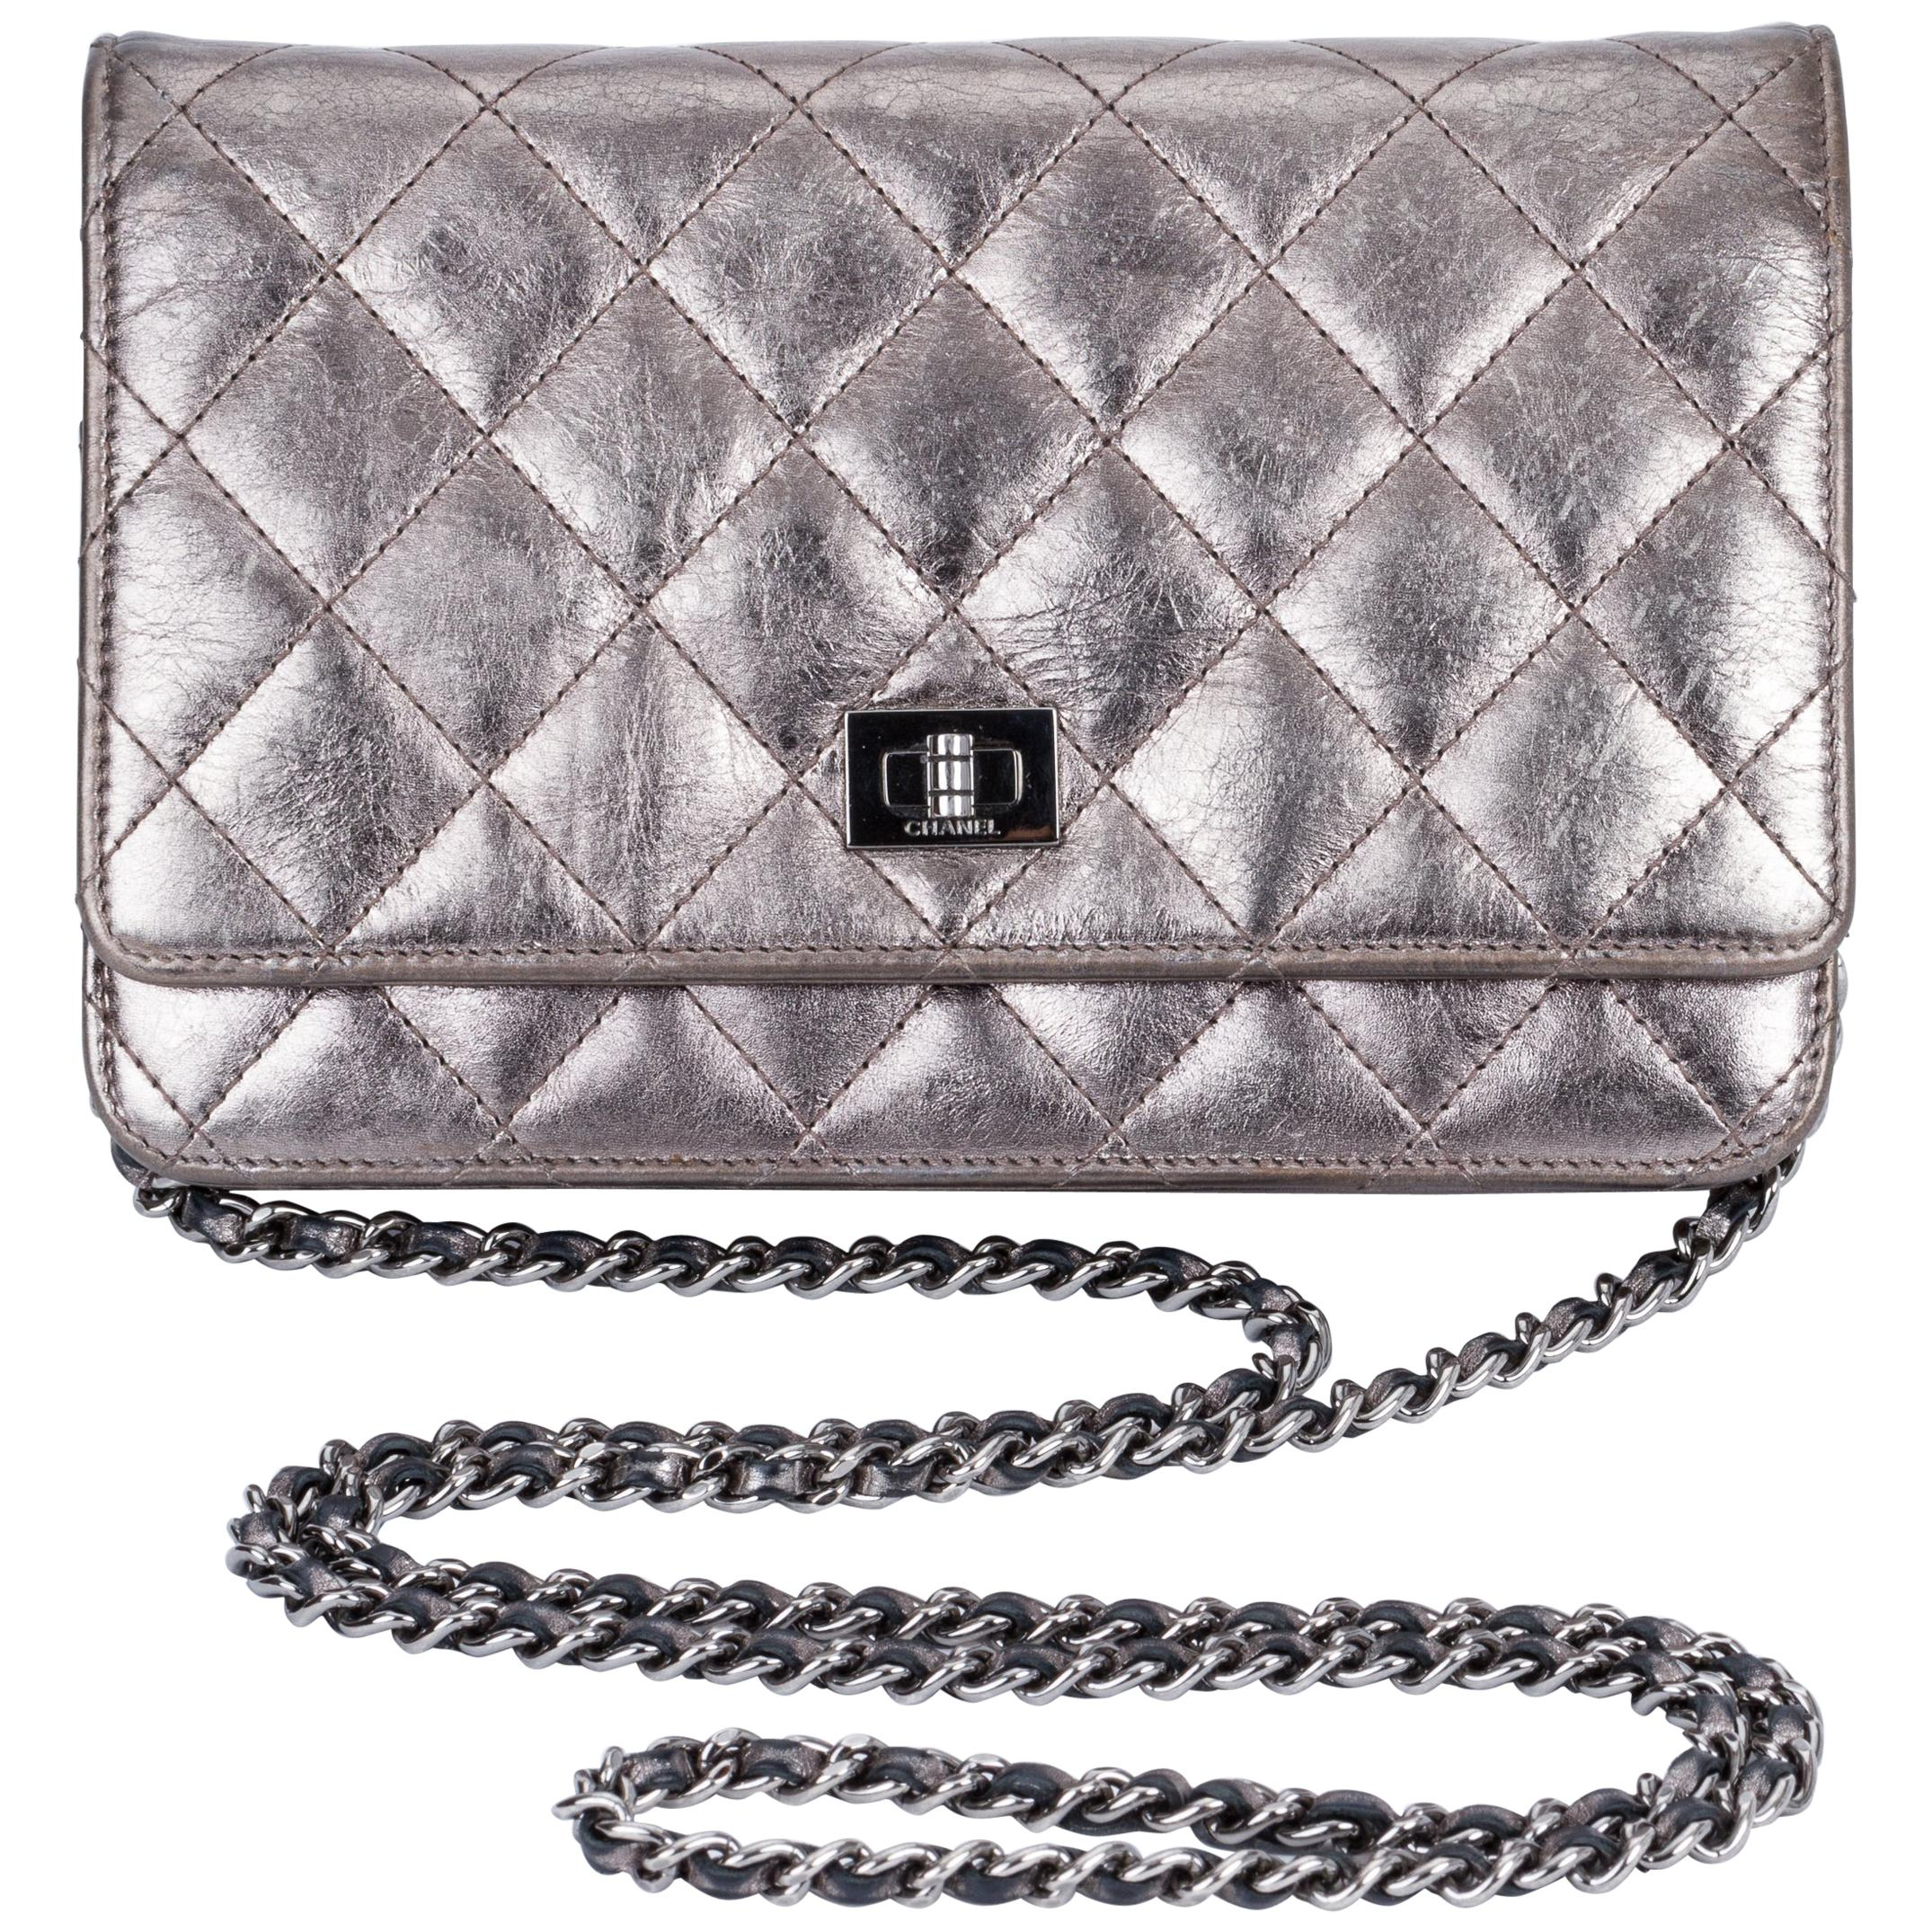 c177c2fd921b Chanel Reissue Pewter Wallet On A Chain Crossbody Bag at 1stdibs